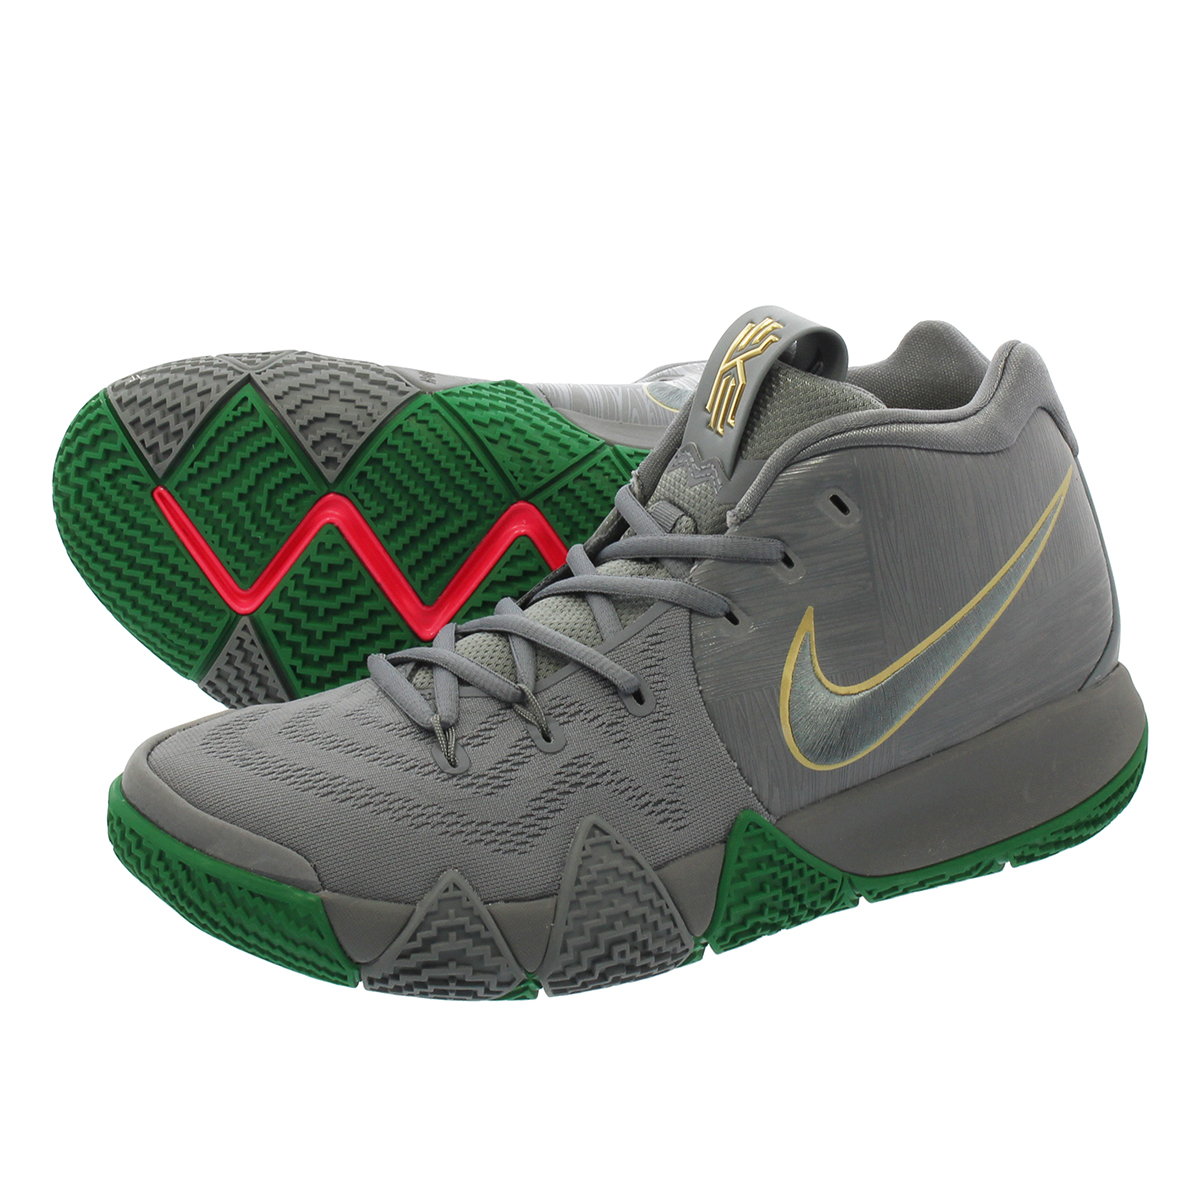 NIKE KYRIE 4 【CITY OF GUARDIANS】 ナイキ カイリー 4 SILVER/METALLIC GOLD/LIGHT GUM BROWN 943806-001